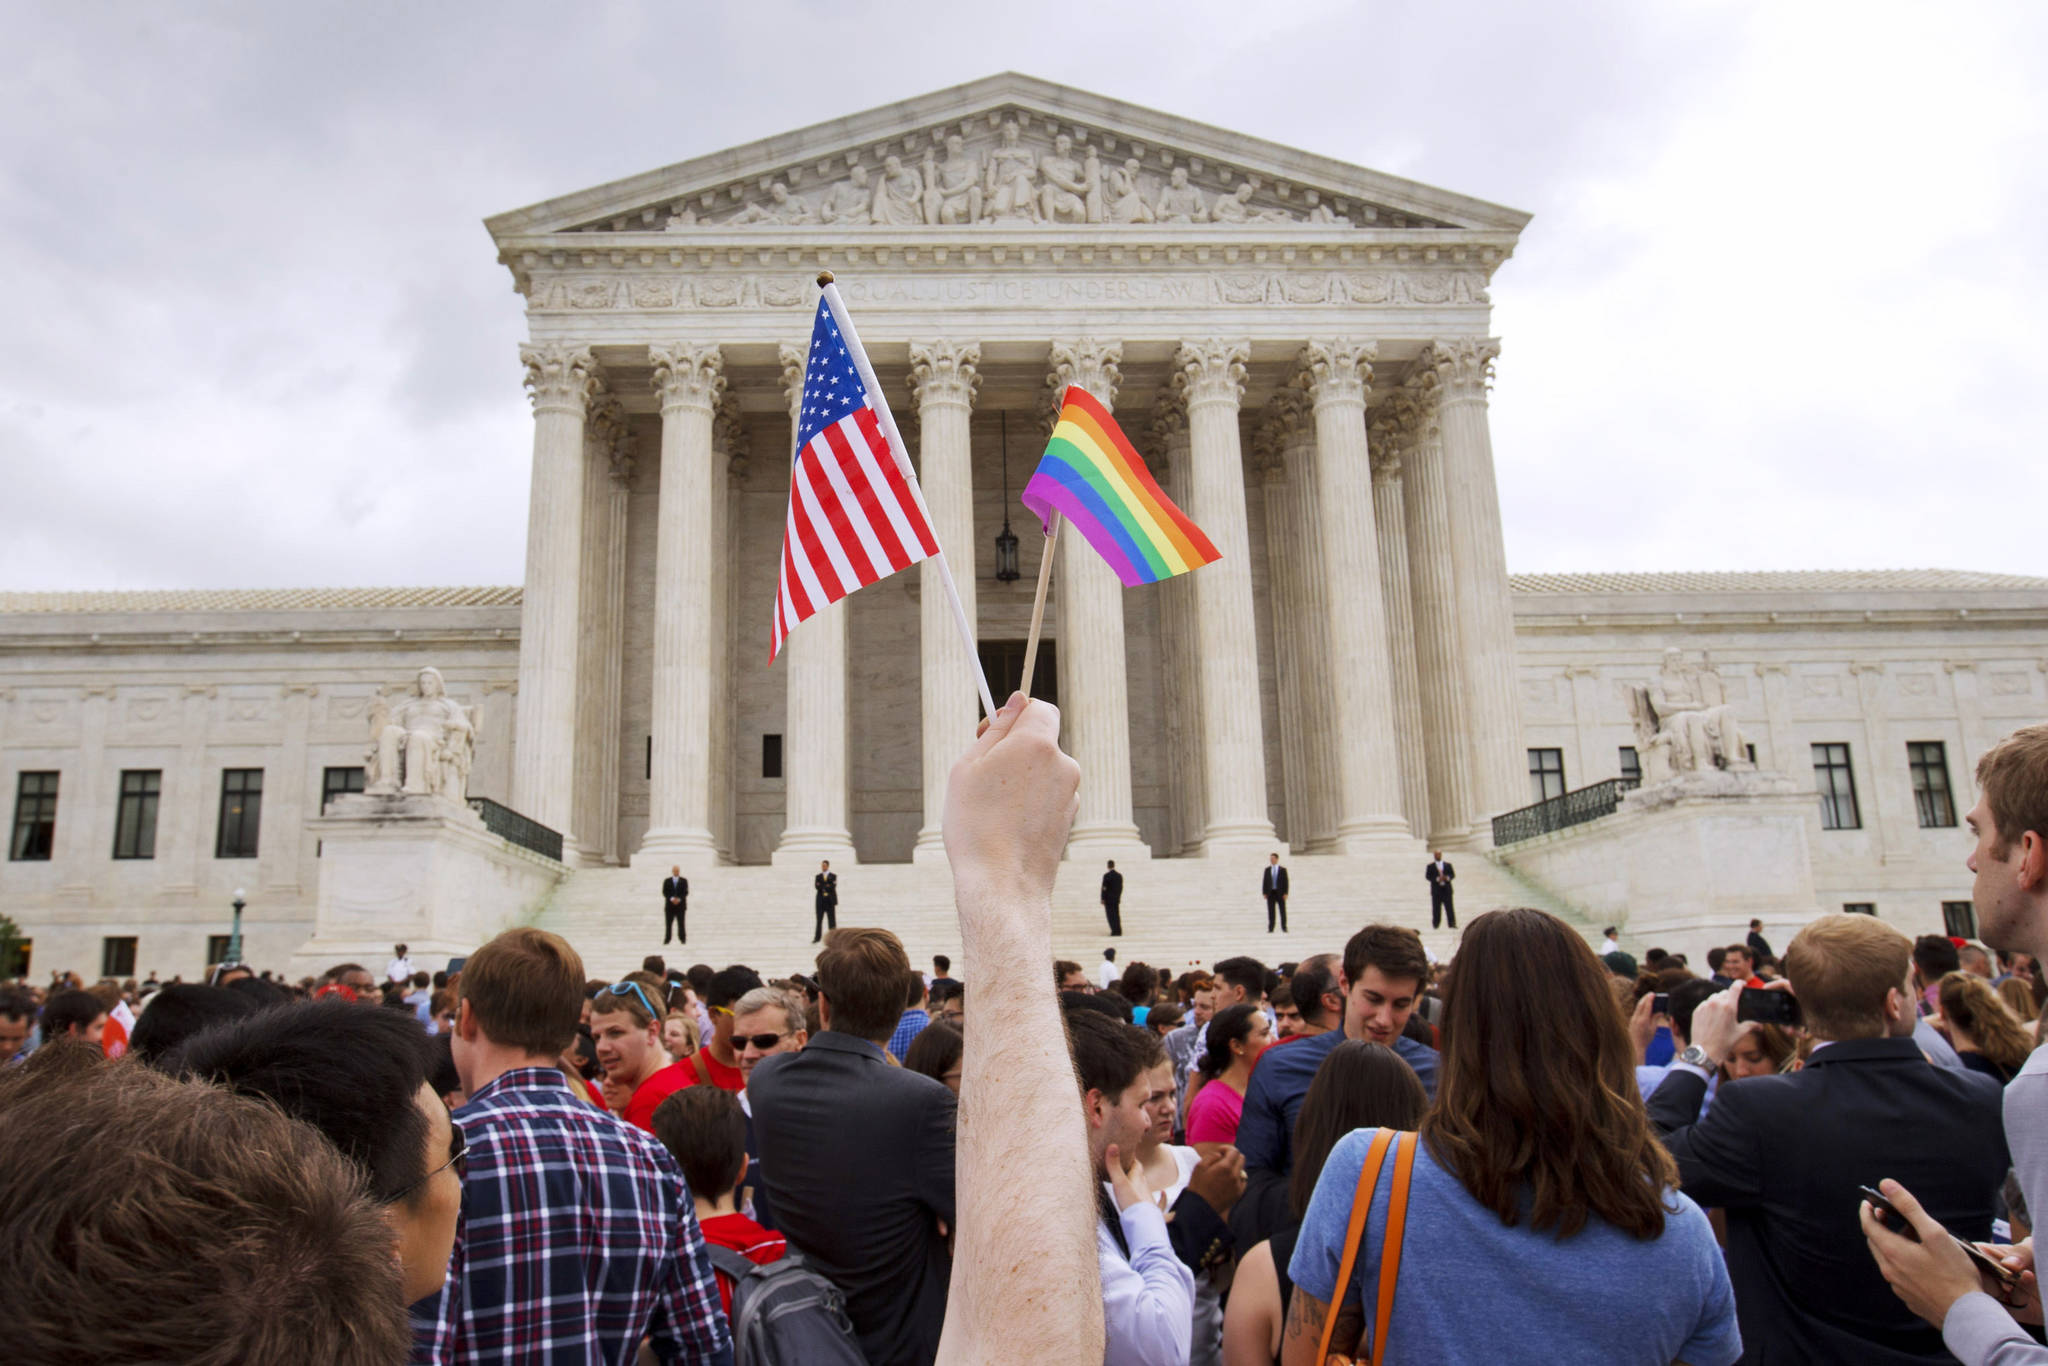 A man holds a U.S. and a rainbow flag outside the Supreme Court in Washington in 2015 after the court legalized gay marriage nationwide. Court documents show the state of Alaska for years maintains a discriminatory policy that denied some same-sex spouses benefits by wrongly claiming gay marriage was not recognized in Alaska, long after courts ordered they be recognized. (AP Photo / Jacquelyn Martin)